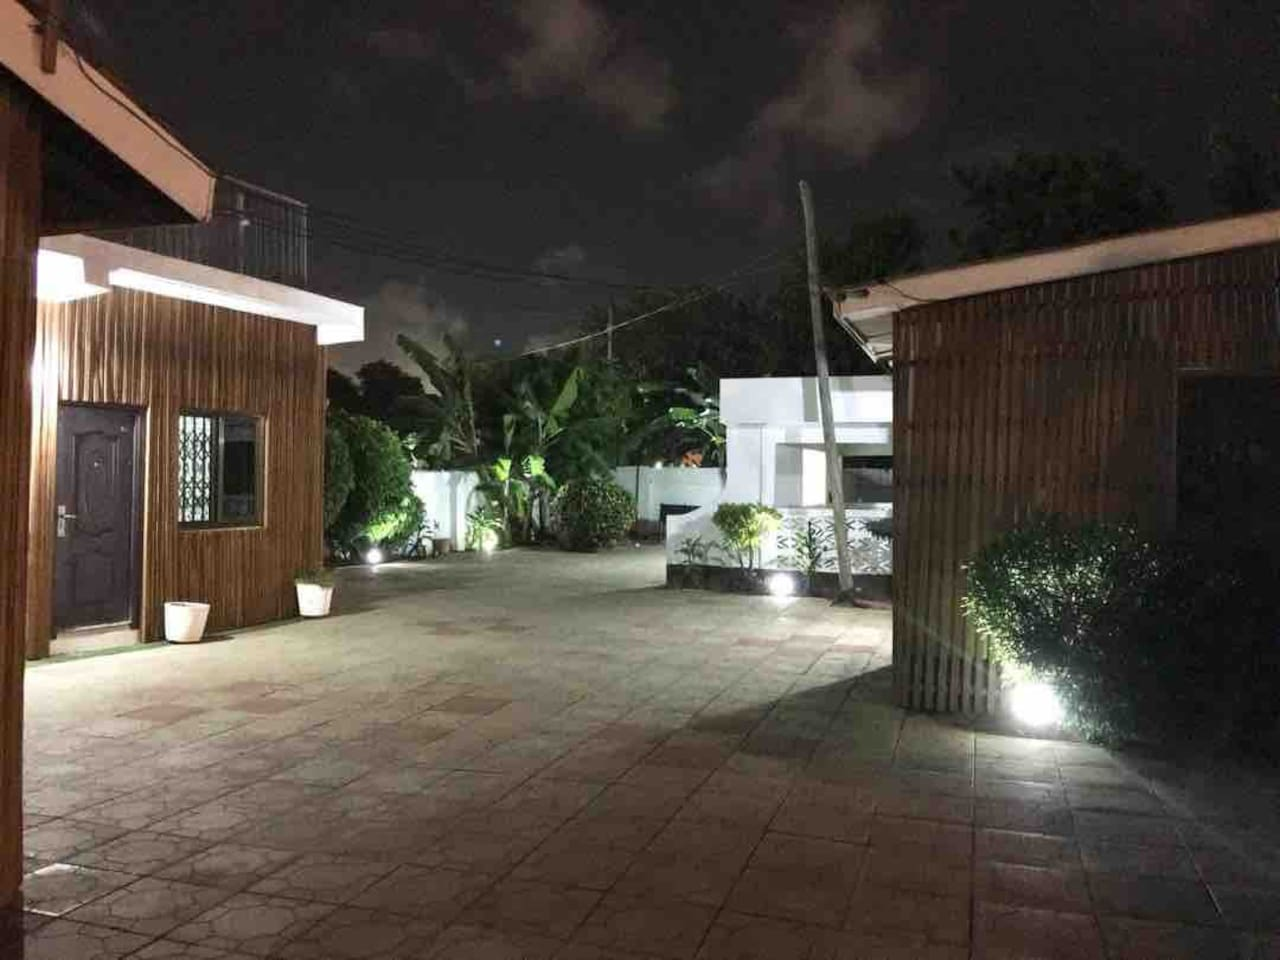 Night view of the house